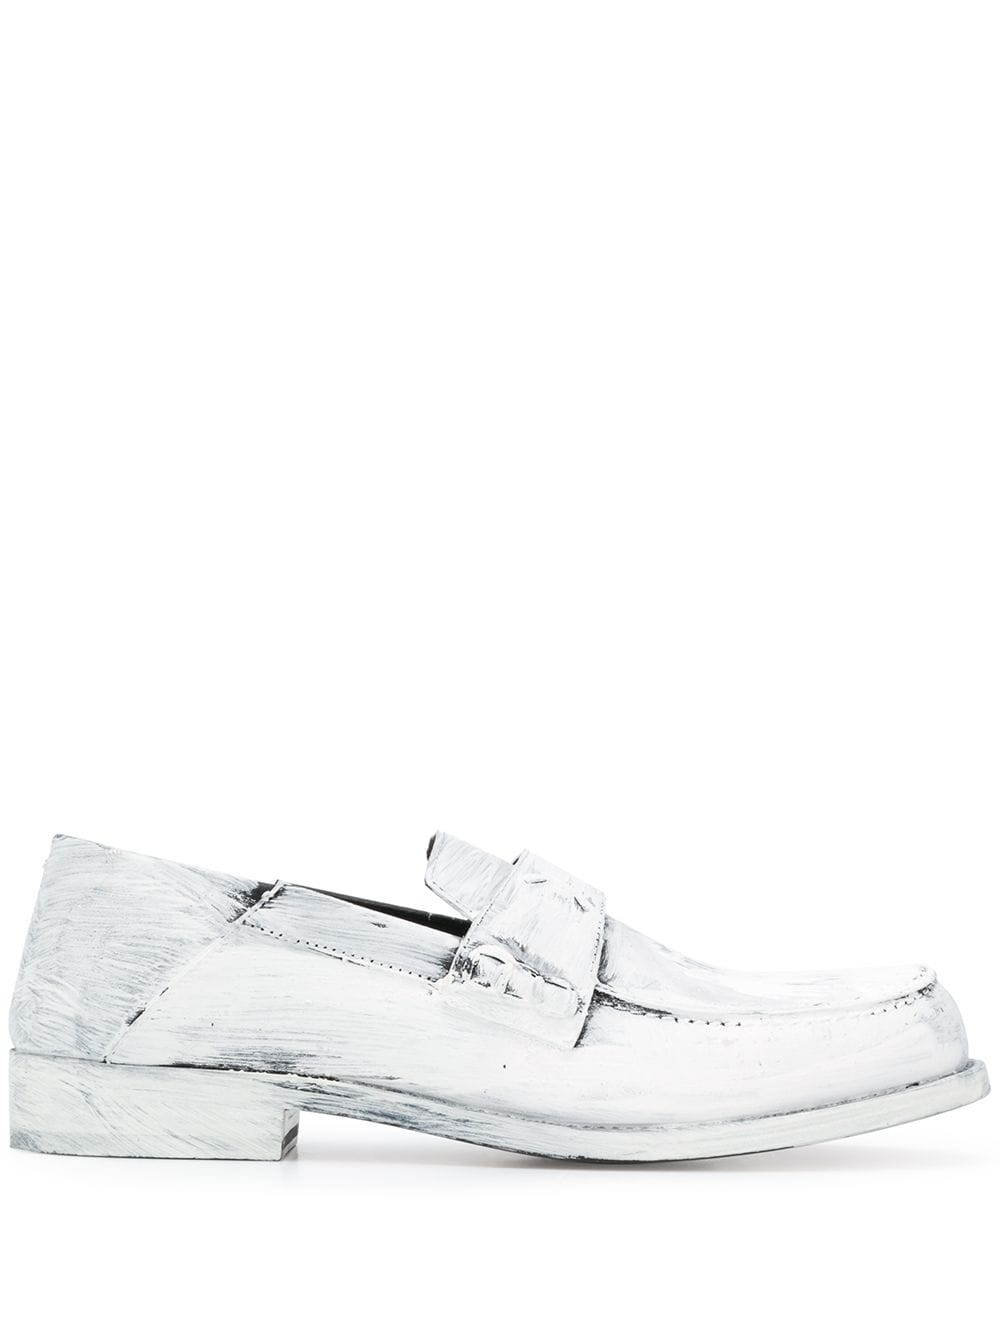 MAISON MARGIELA WOMEN STITCHED LOGO PAINTED LOAFER